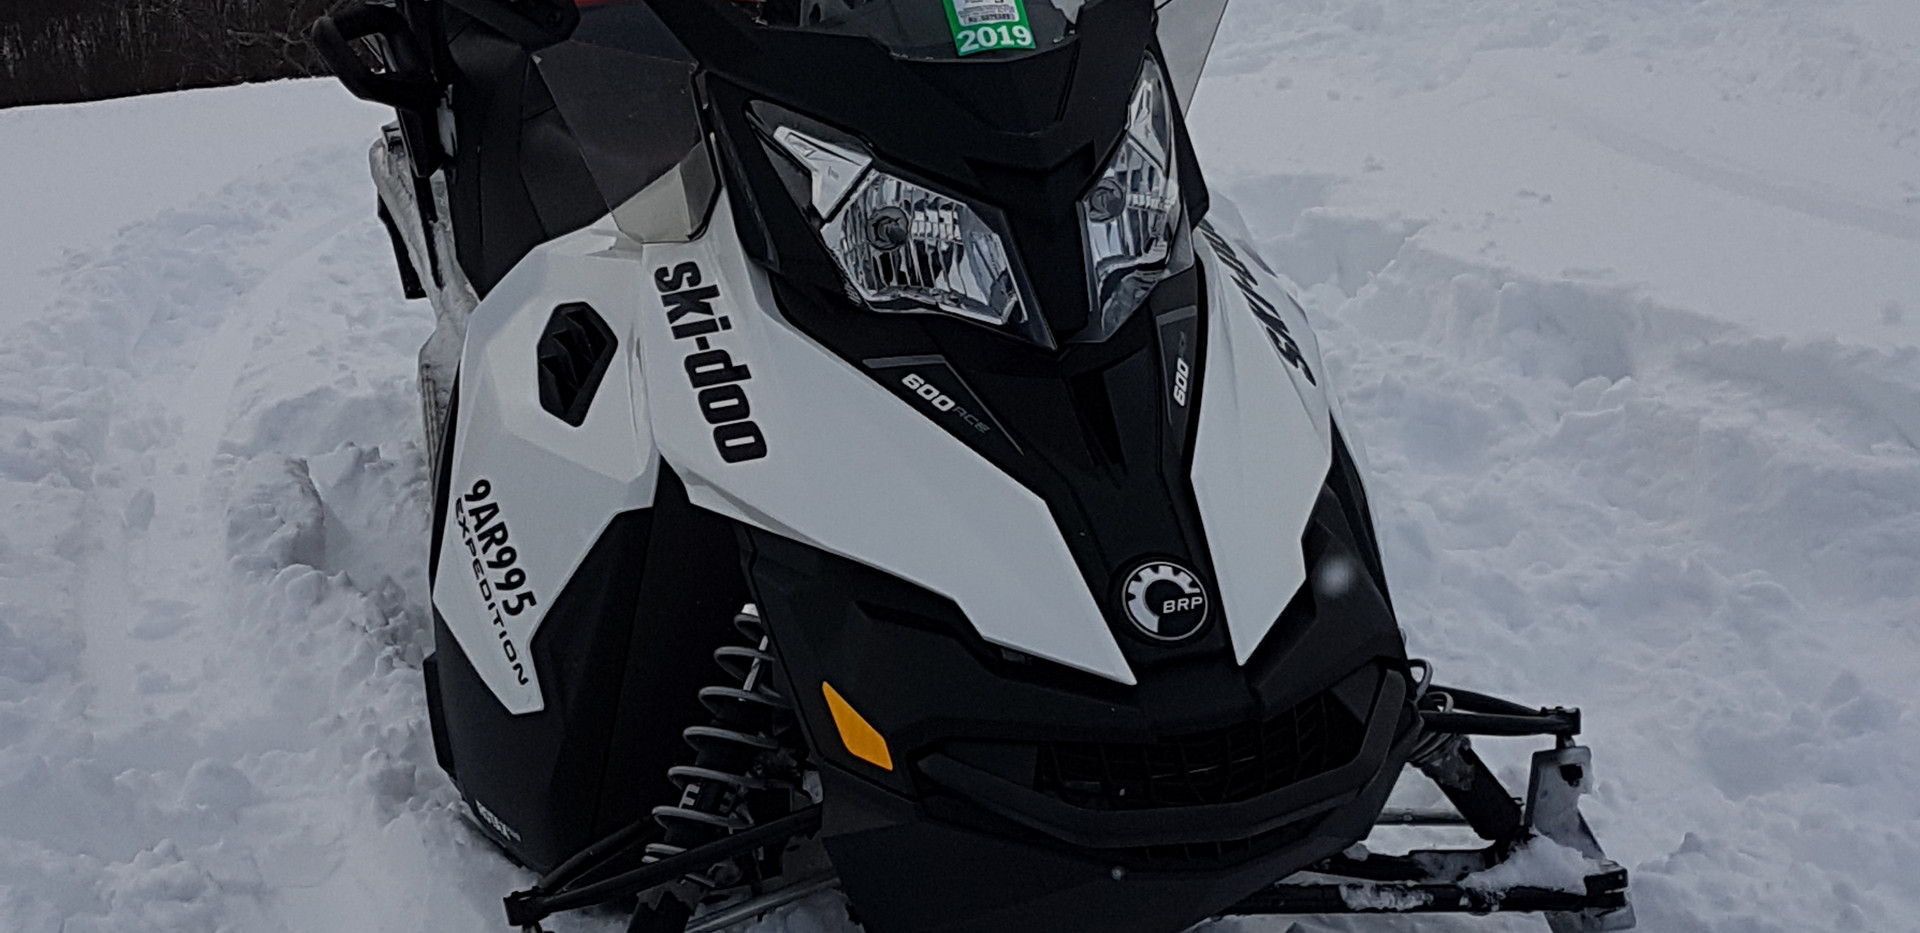 Ski-doo Expedition 600 ace